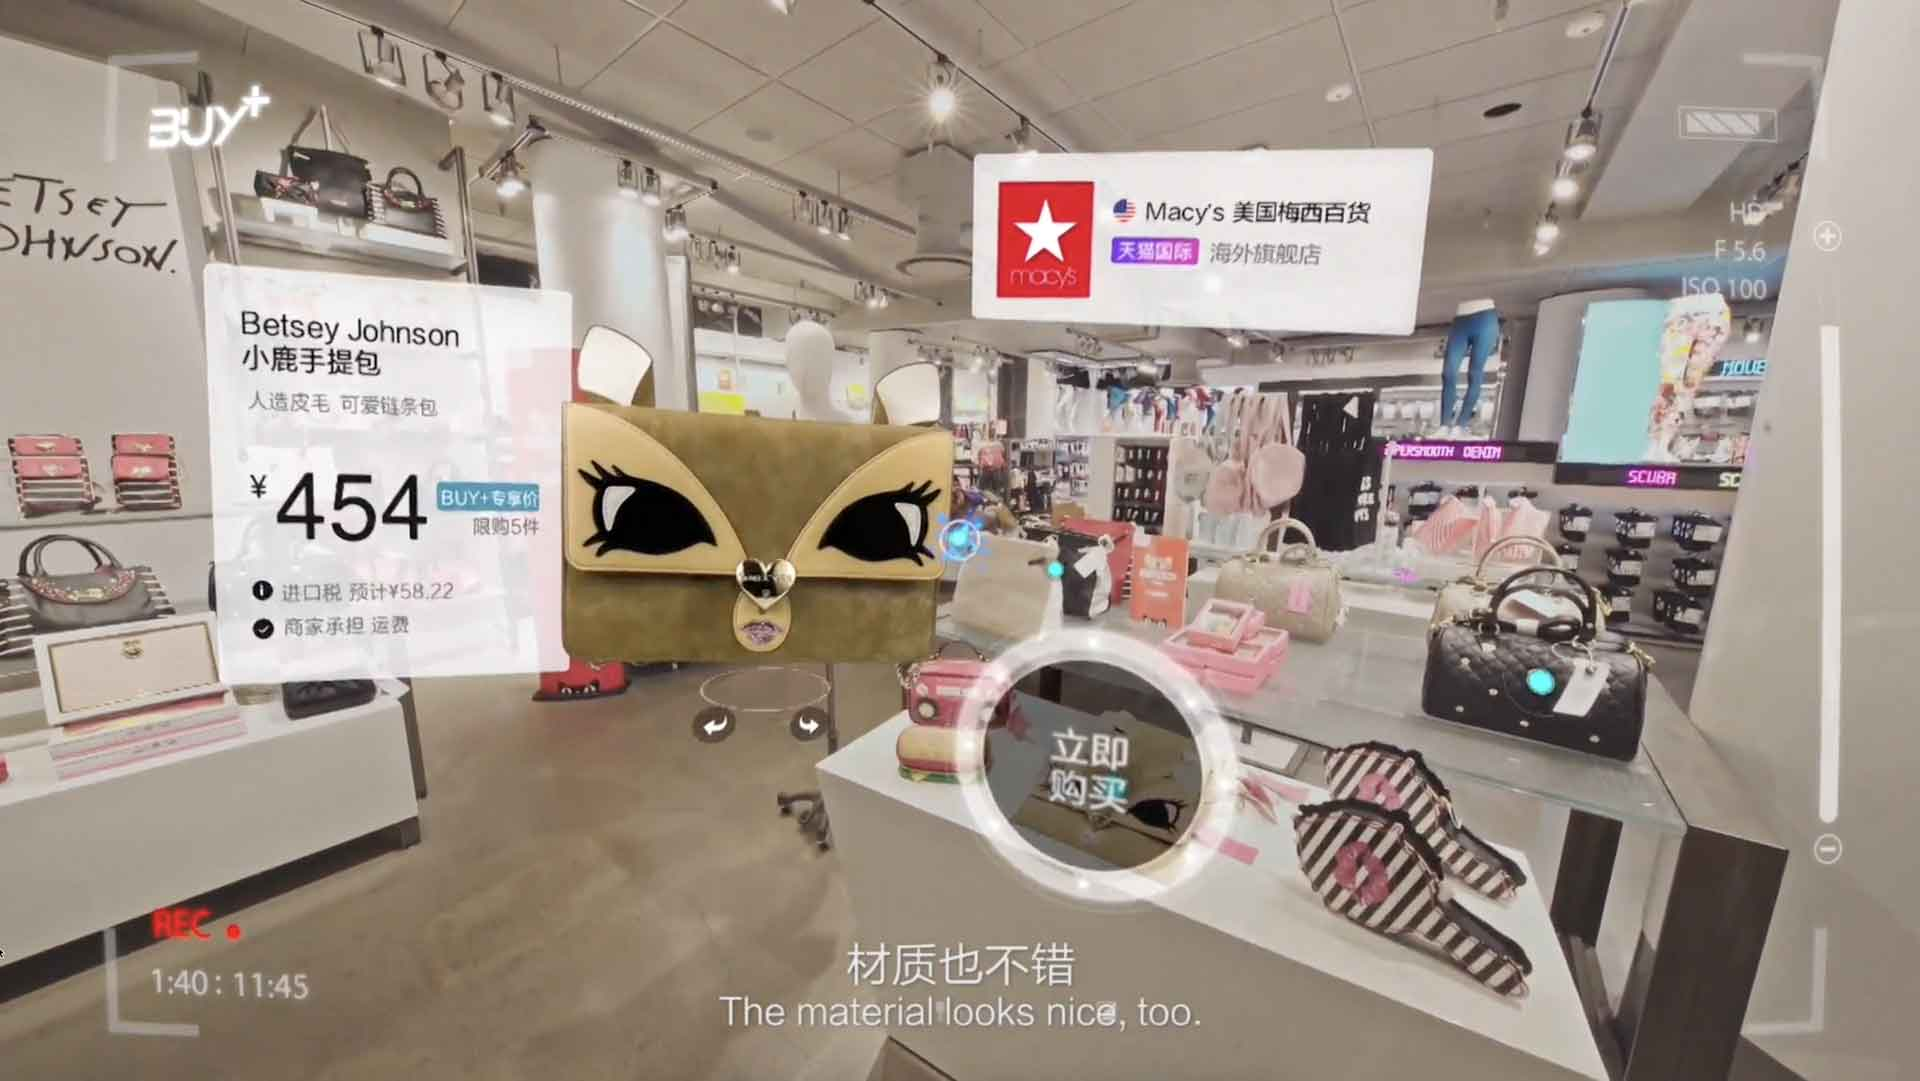 The Strange Lonely Experience Of Shopping In Alibabas Vr World